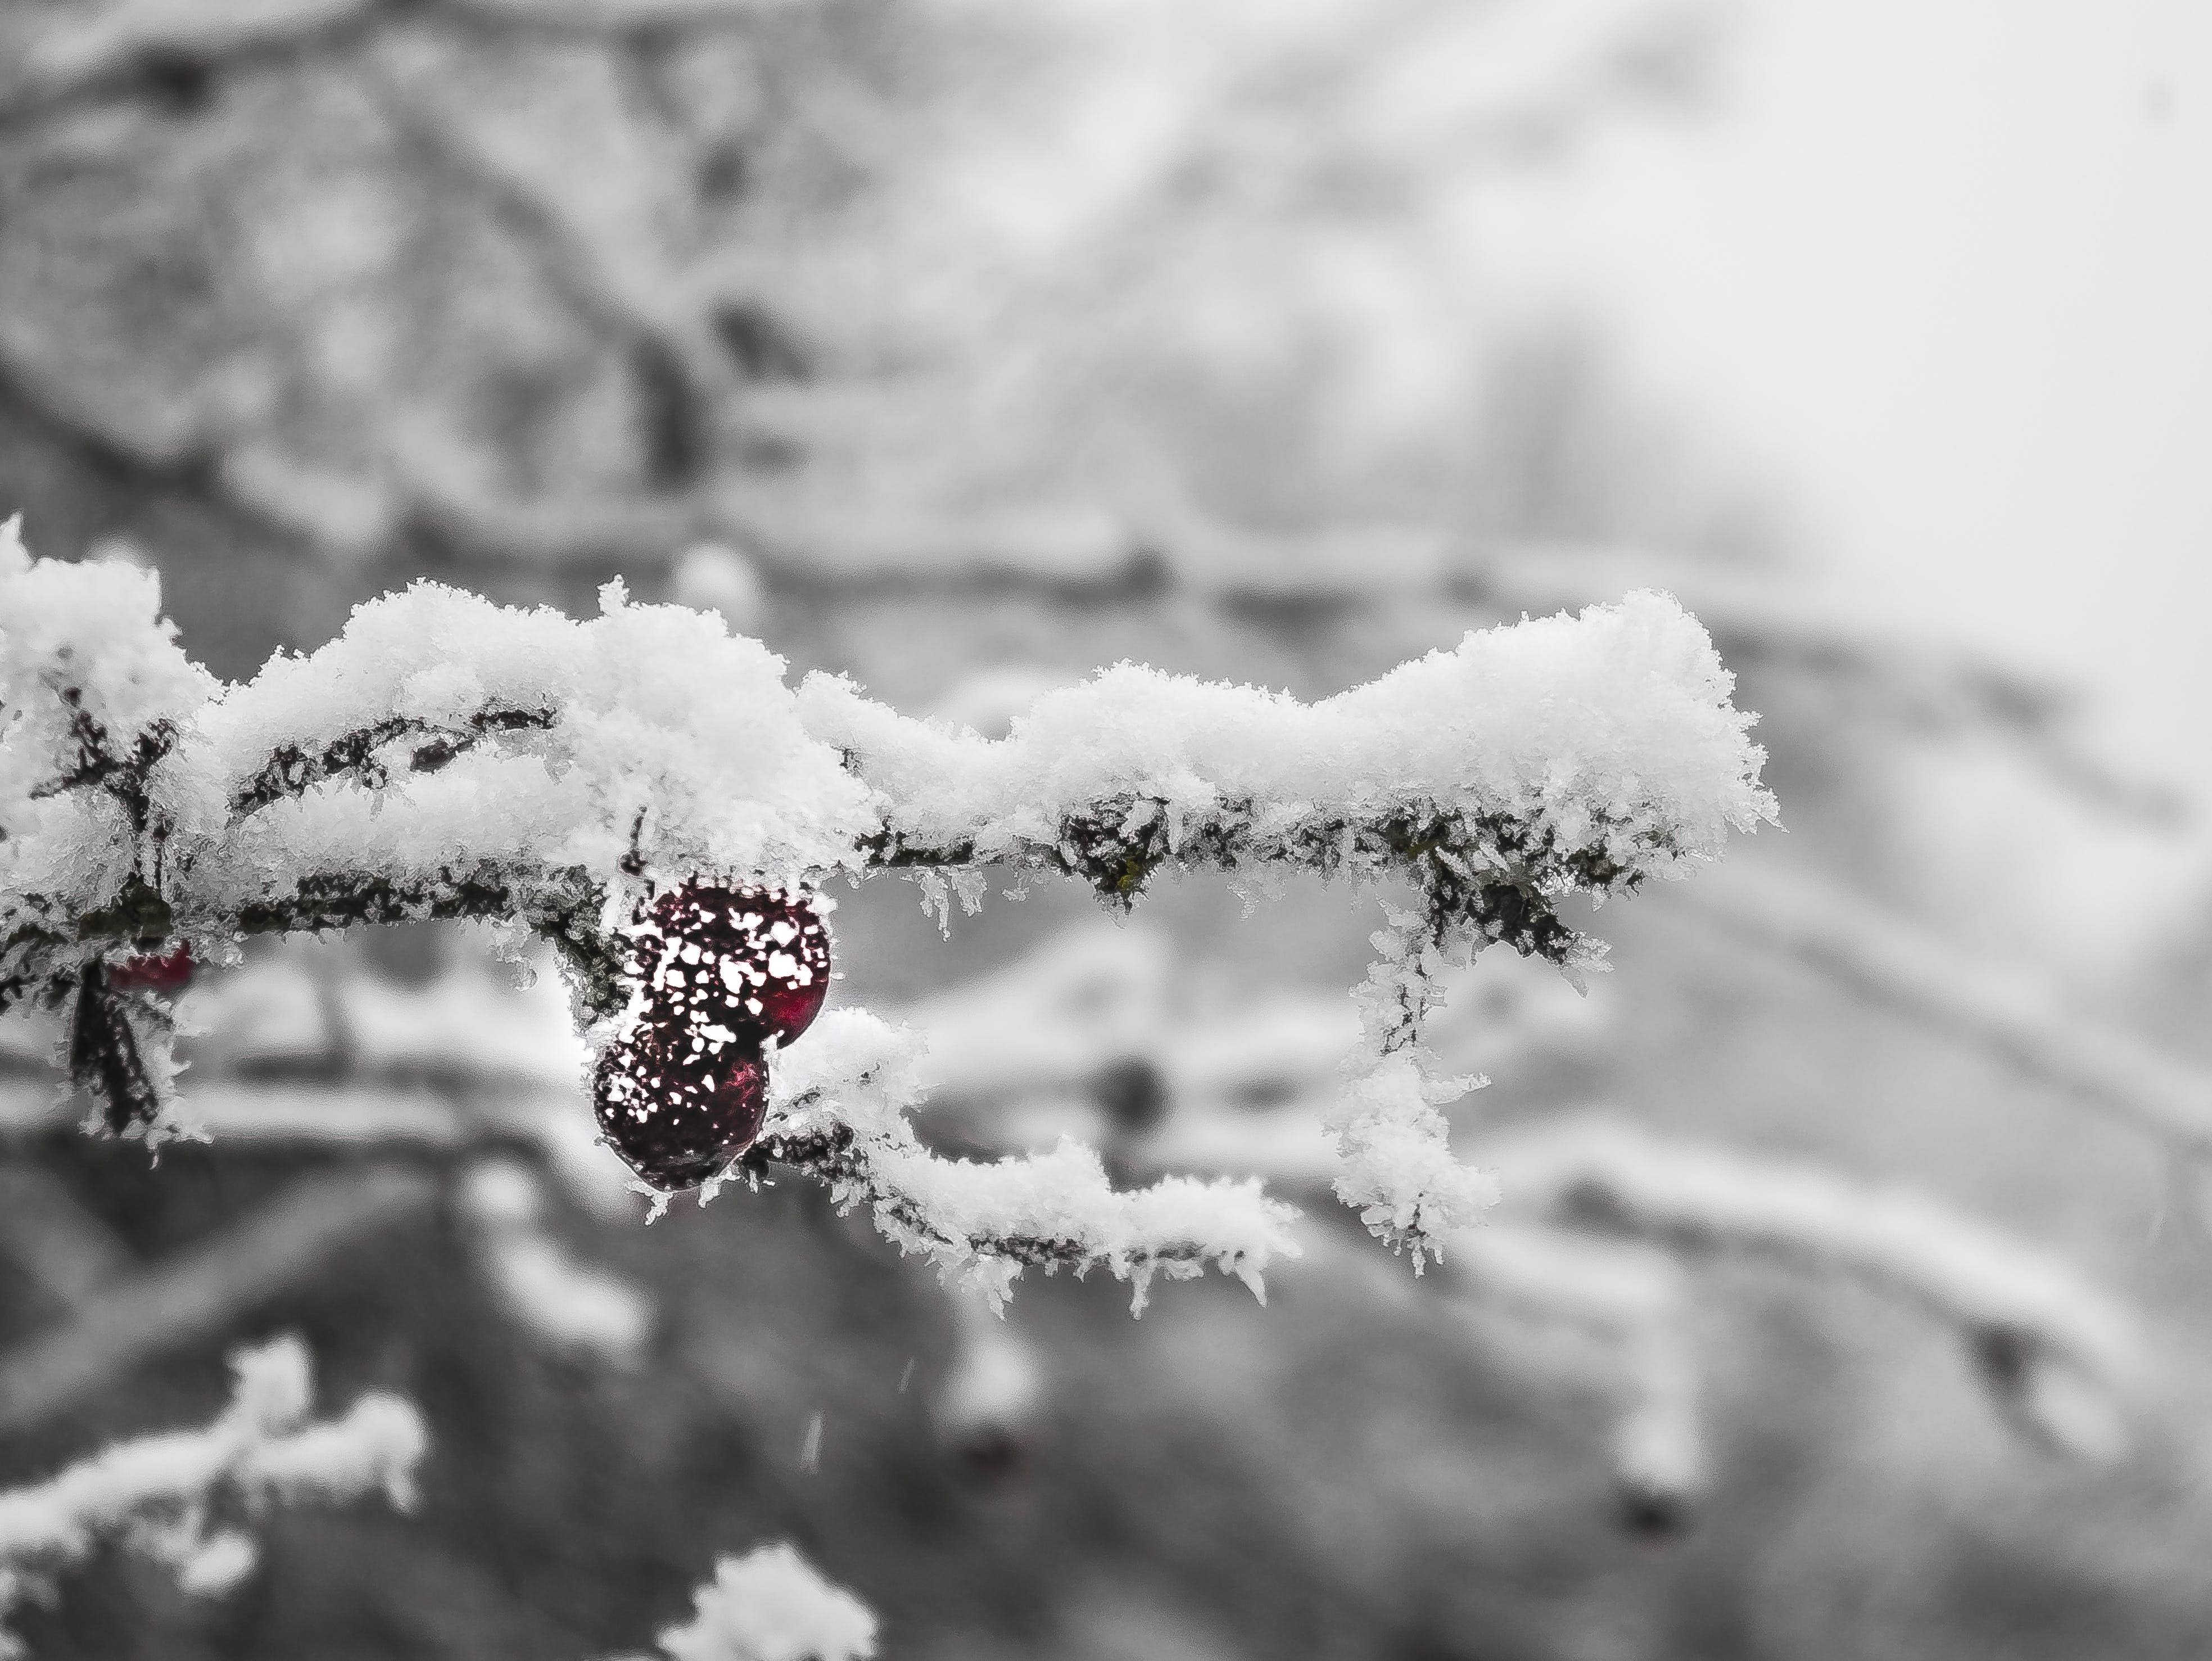 Free stock photo of #berry, #branch, #cold, #fancy